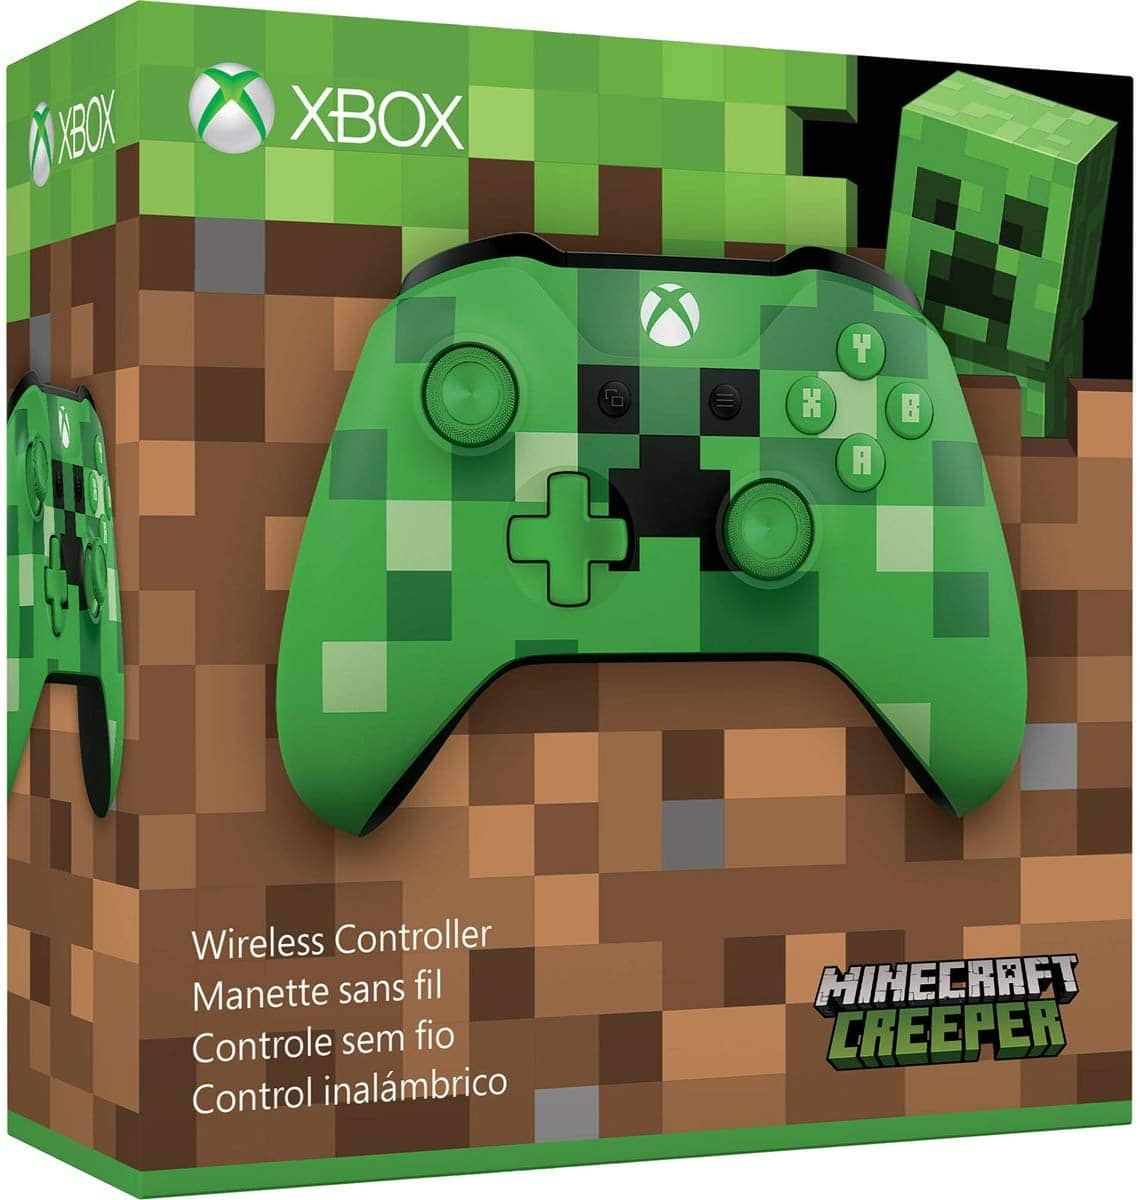 Microsoft Xbox One Bluetooth Wireless Controller (Black, Blue, or Minecraft Creeper Green) for $39.91 + Free Shipping